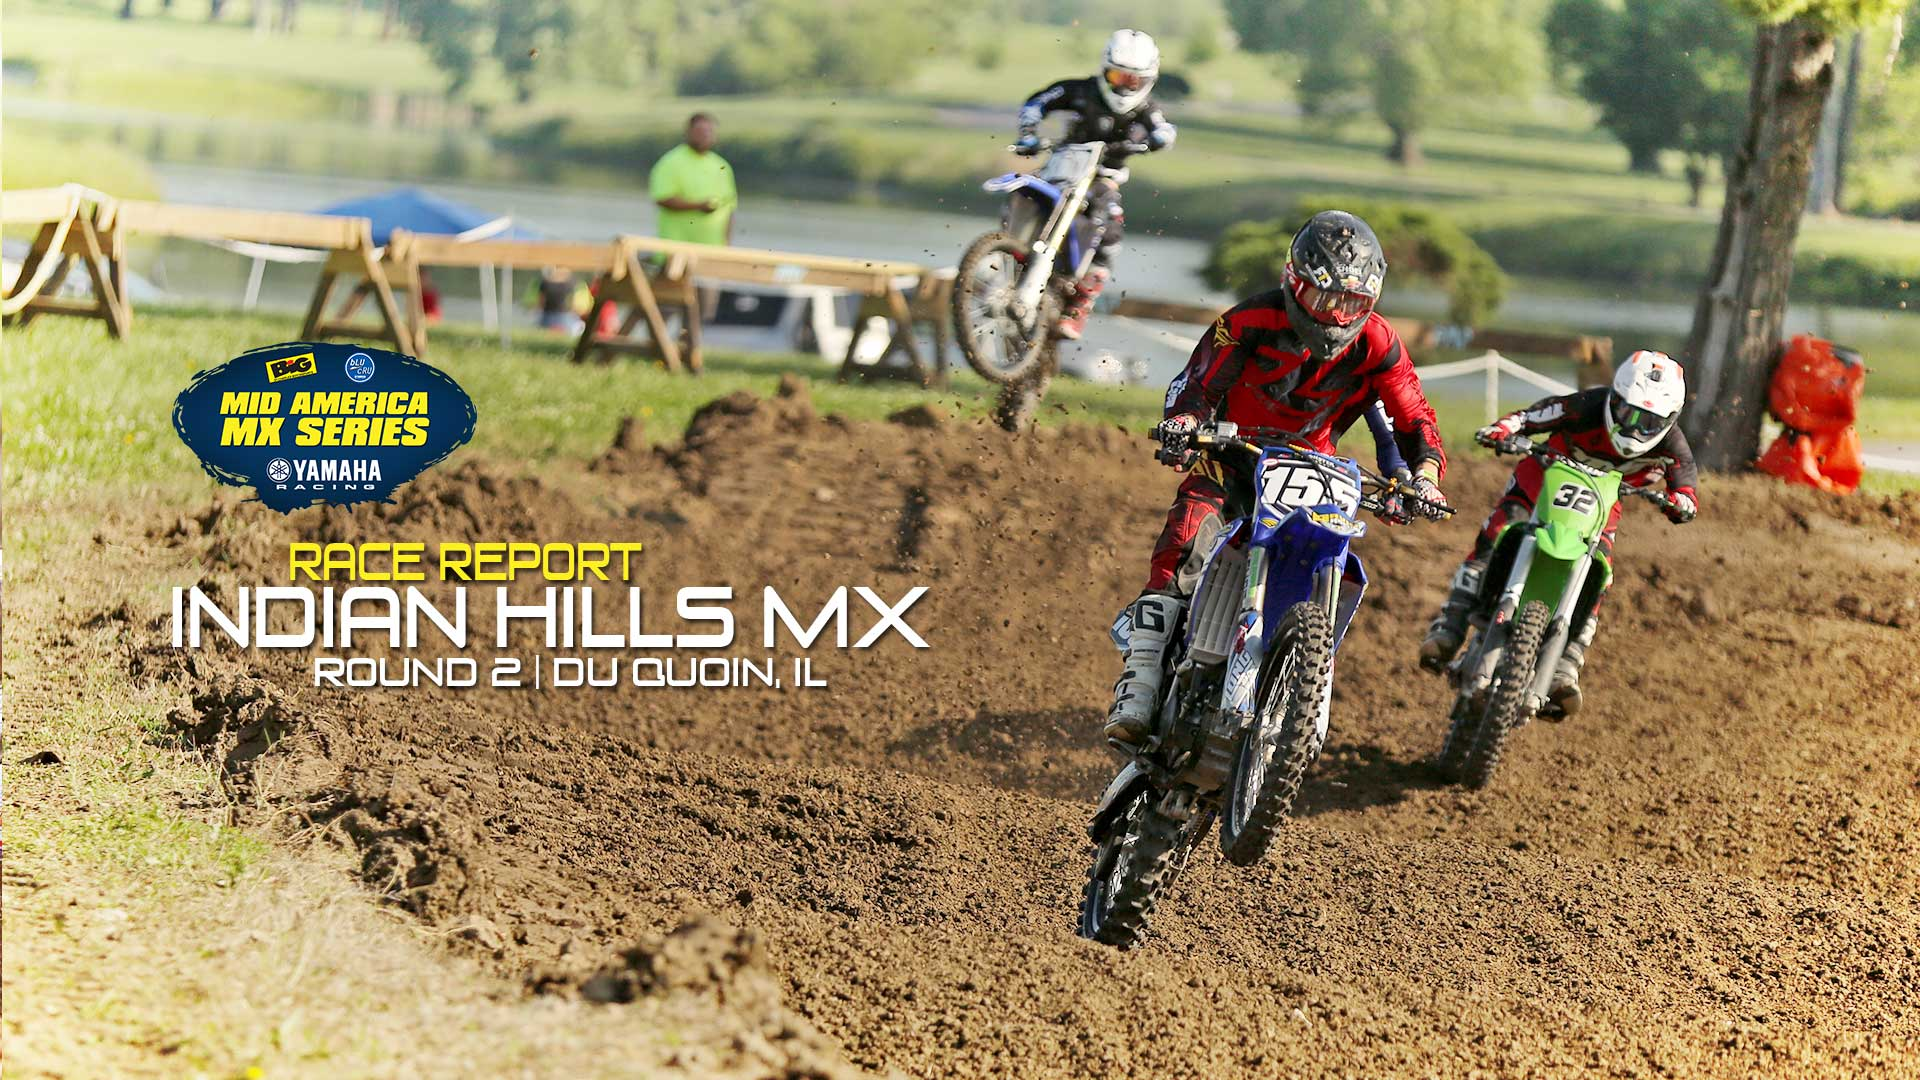 Race Report: Indian Hills MX Mid-America Motocross Series Round 2